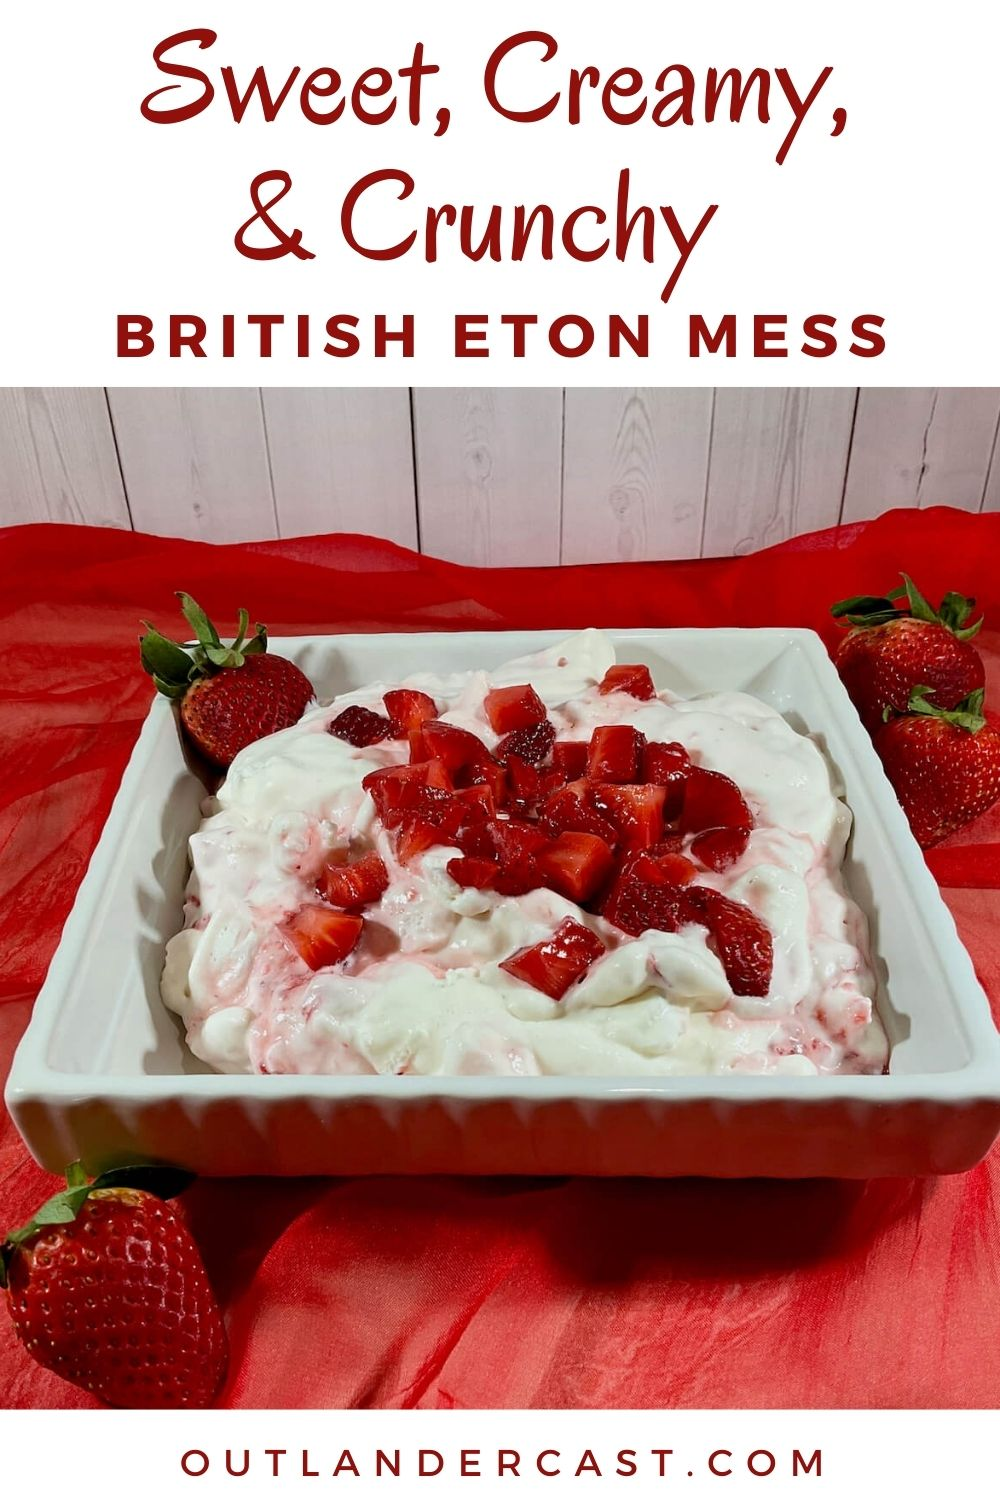 Eton Mess in a bowl on red scarf Pinterest banner